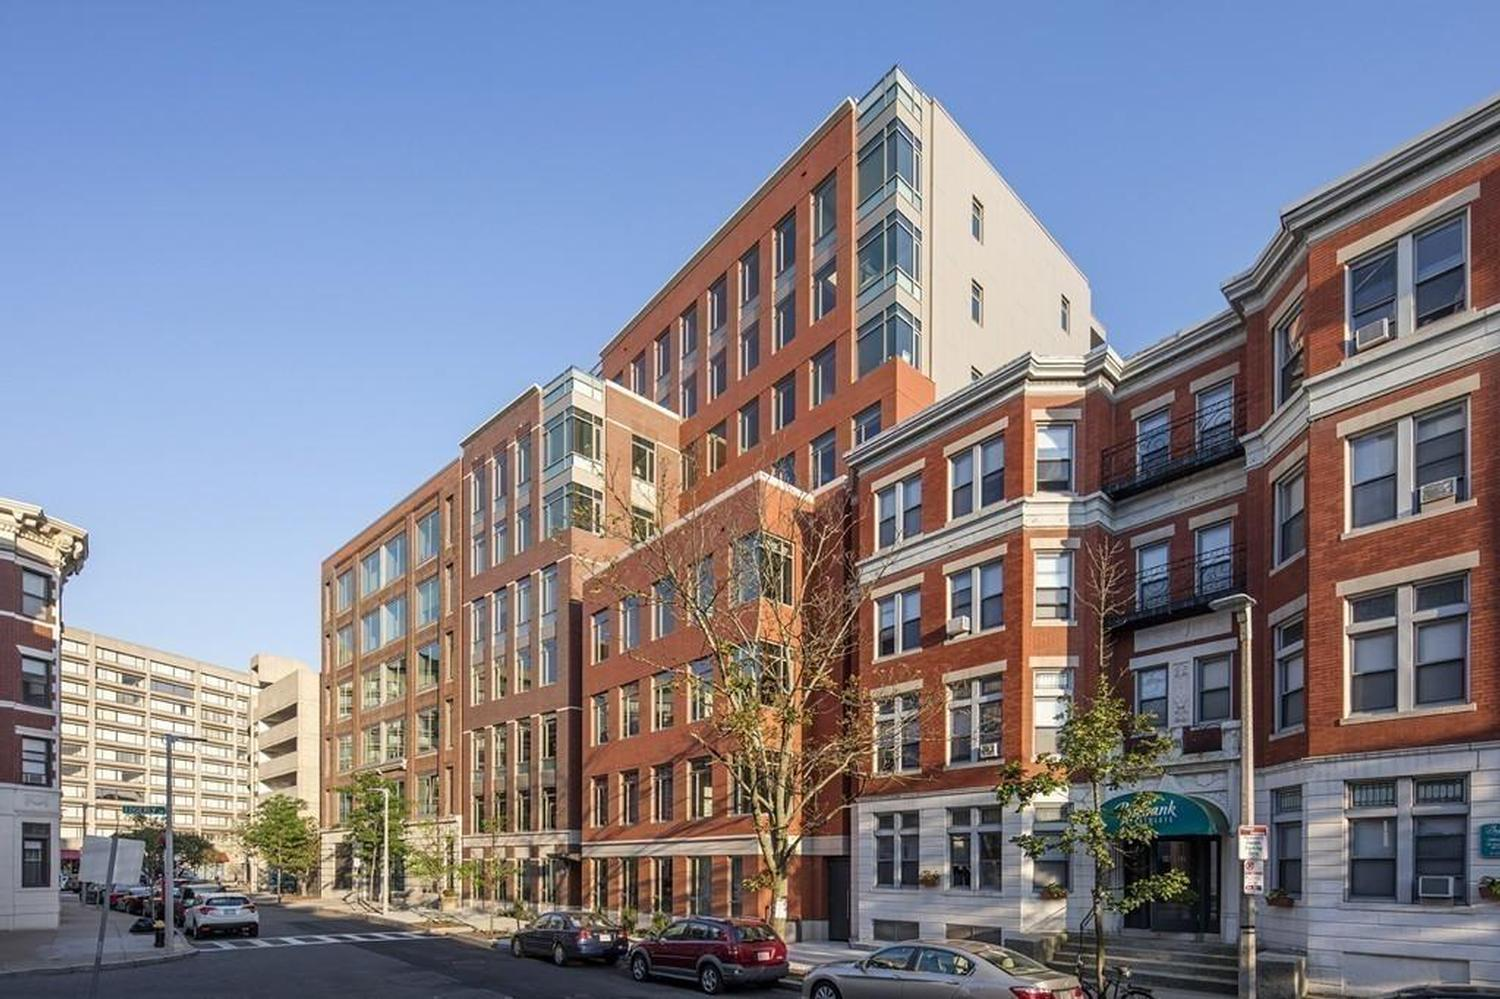 Photo of 43 Westland Avenue Boston - The Fenway, MA 02115